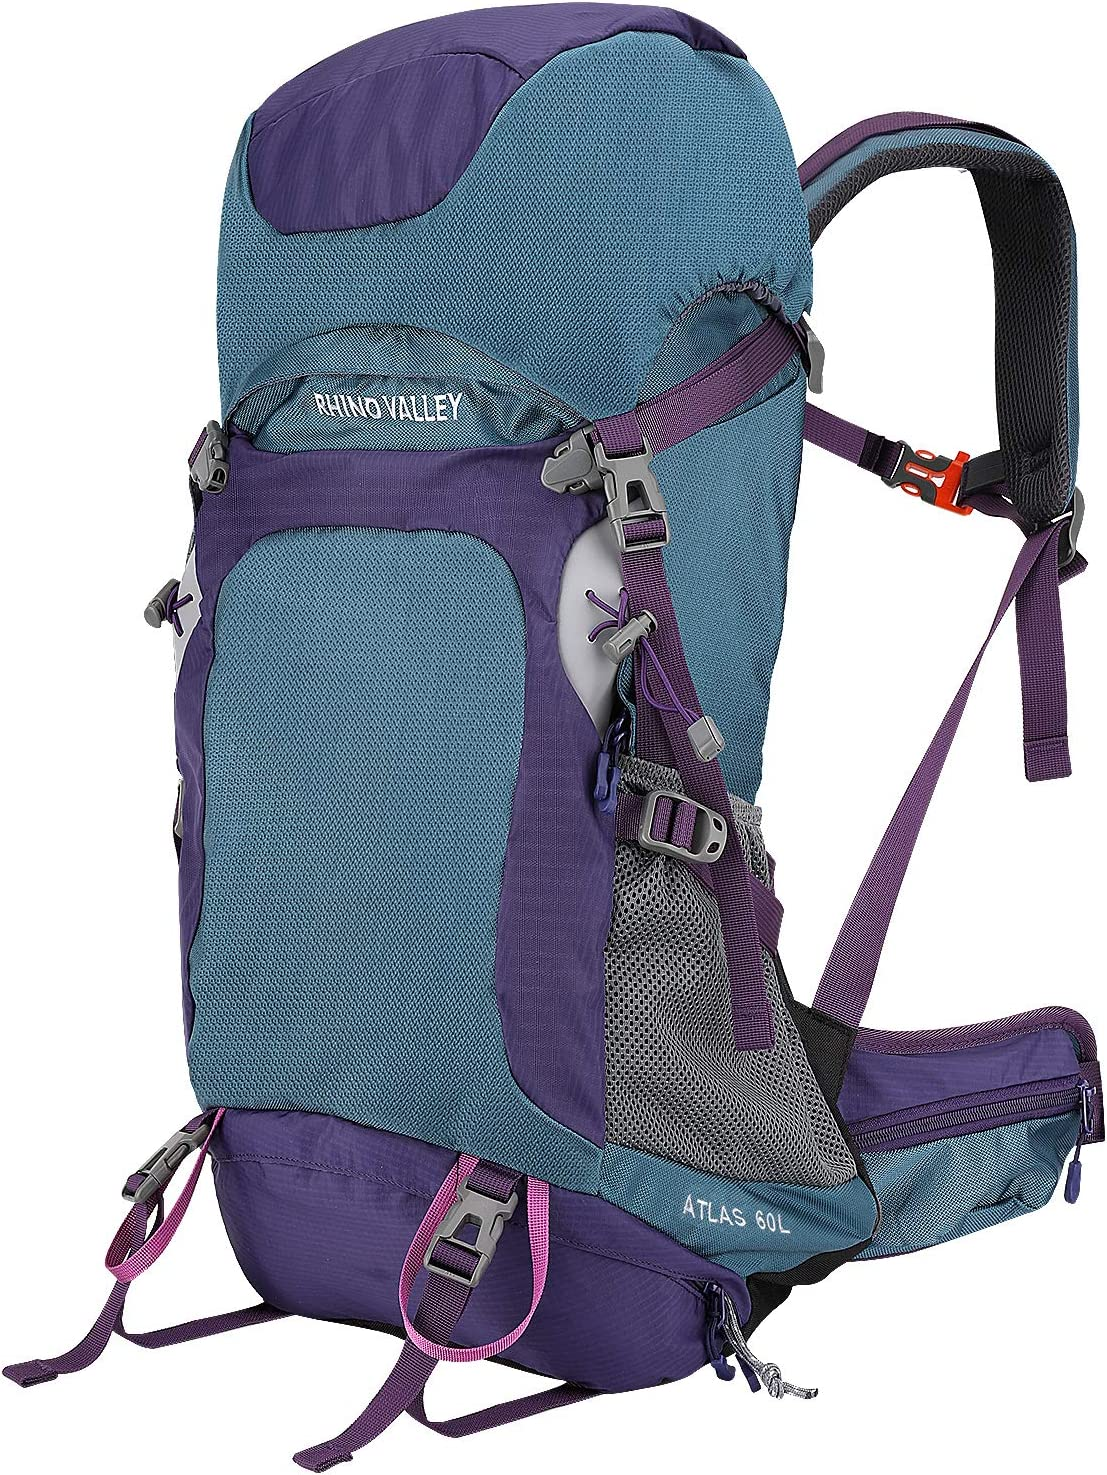 Rhino Valley 60L Internal Frame Hiking Backpack, Durable Daypack with Rainfly for Outdoor Travel Climbing Camping Mountaineering